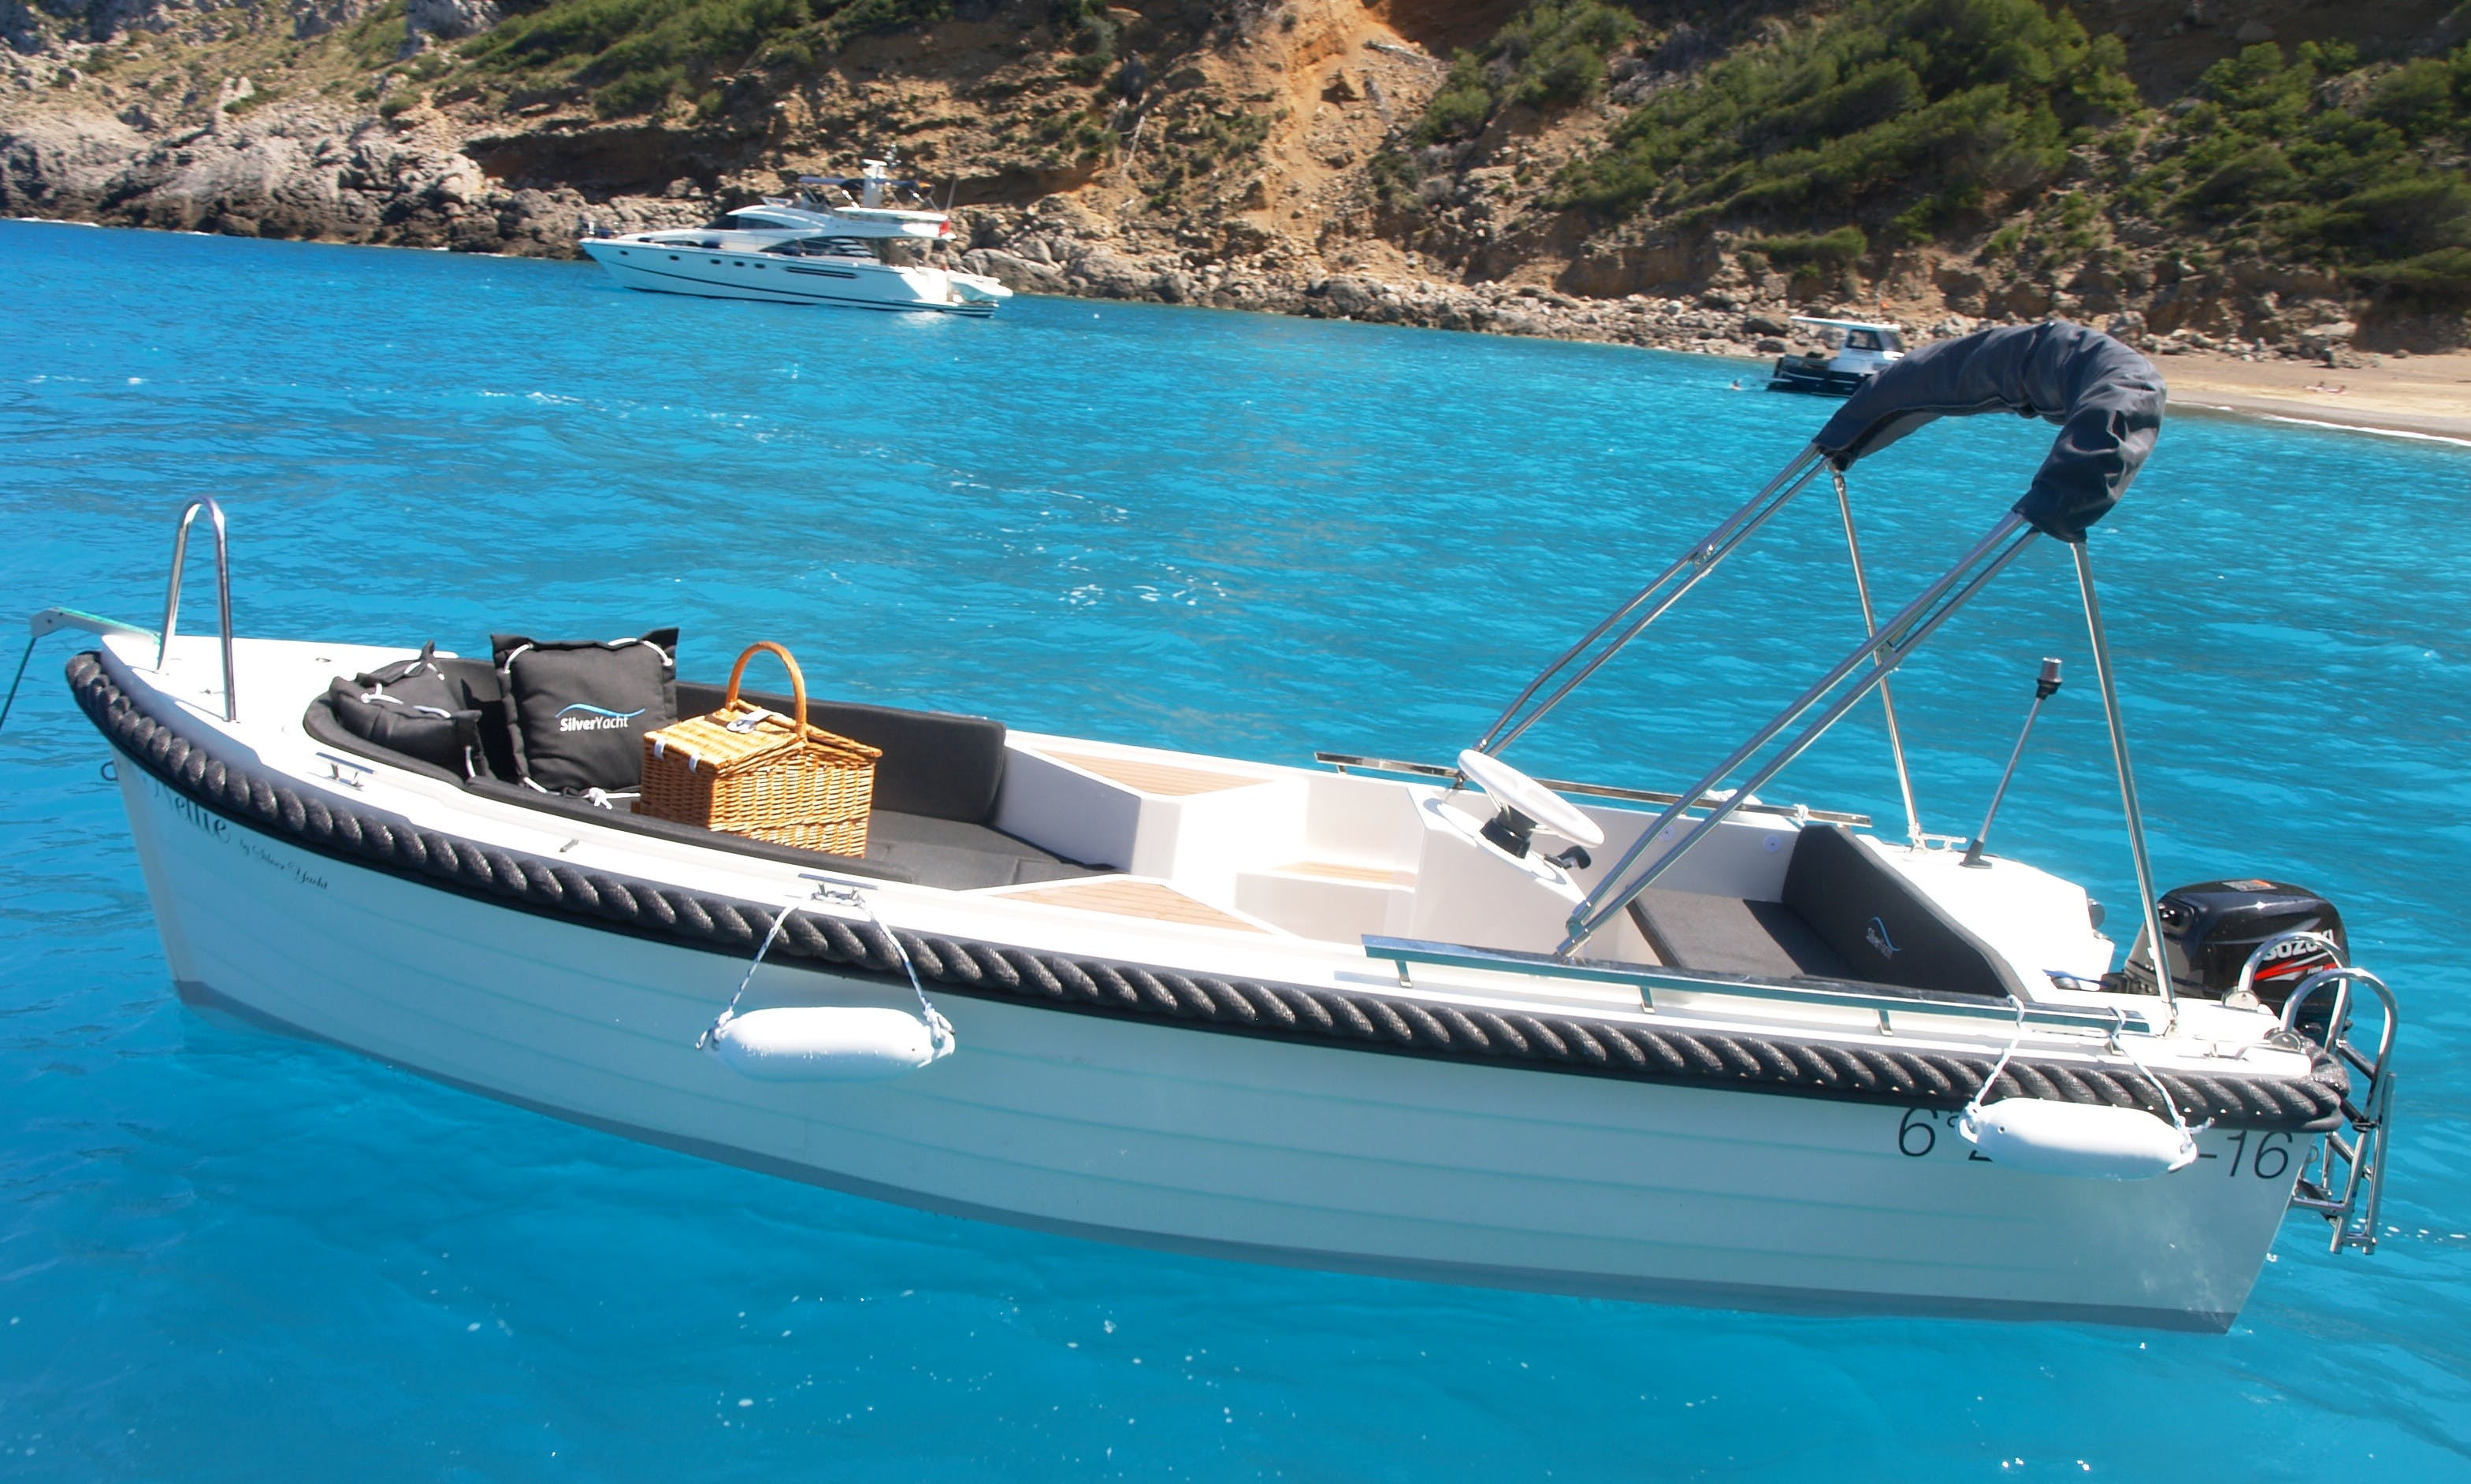 A perfect choice for enjoying a day out on the water in Port d'Alcúdia, Spain